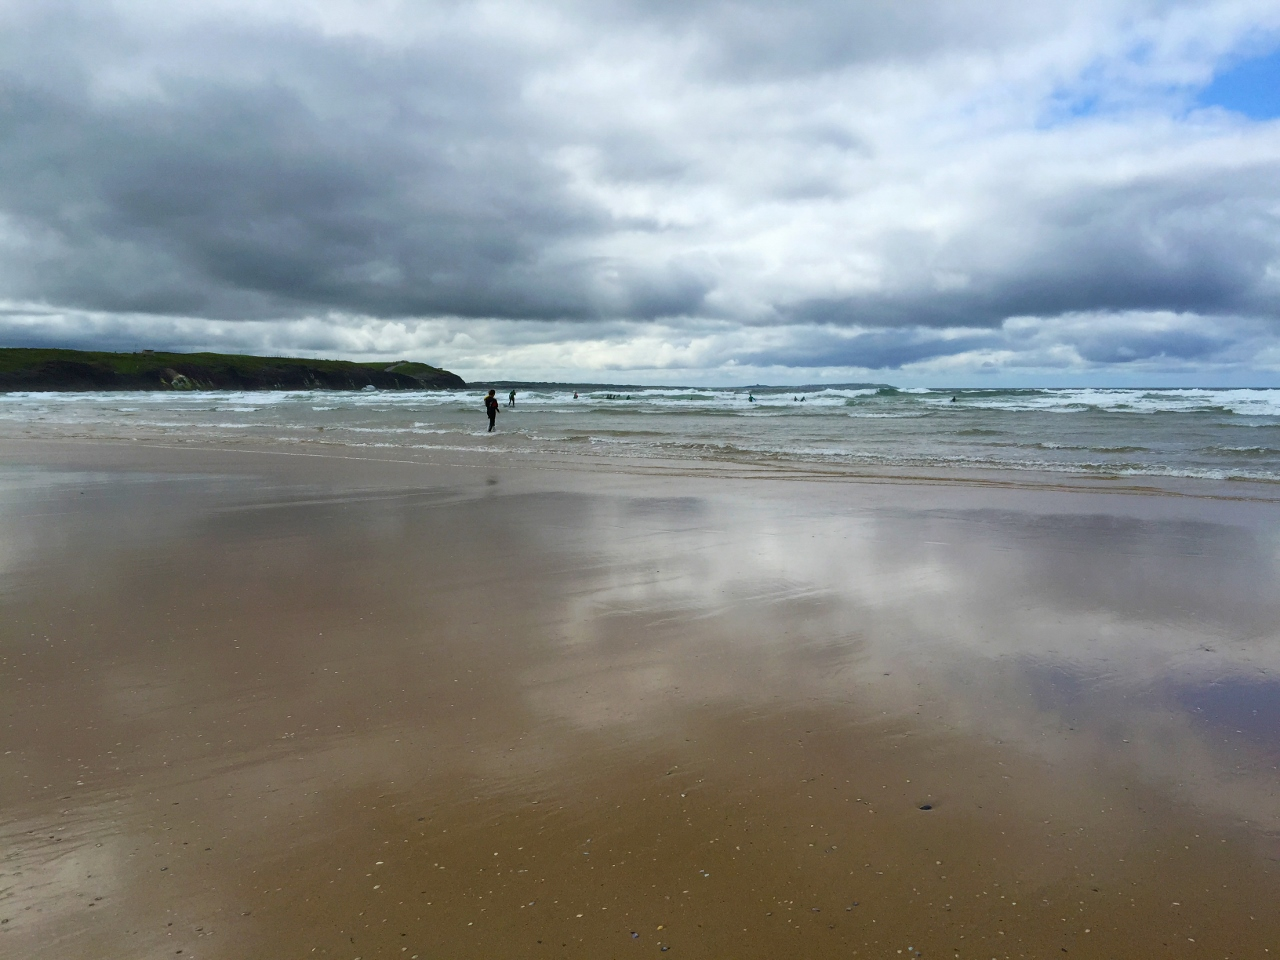 Tullan Strand surfing by Julie Miche